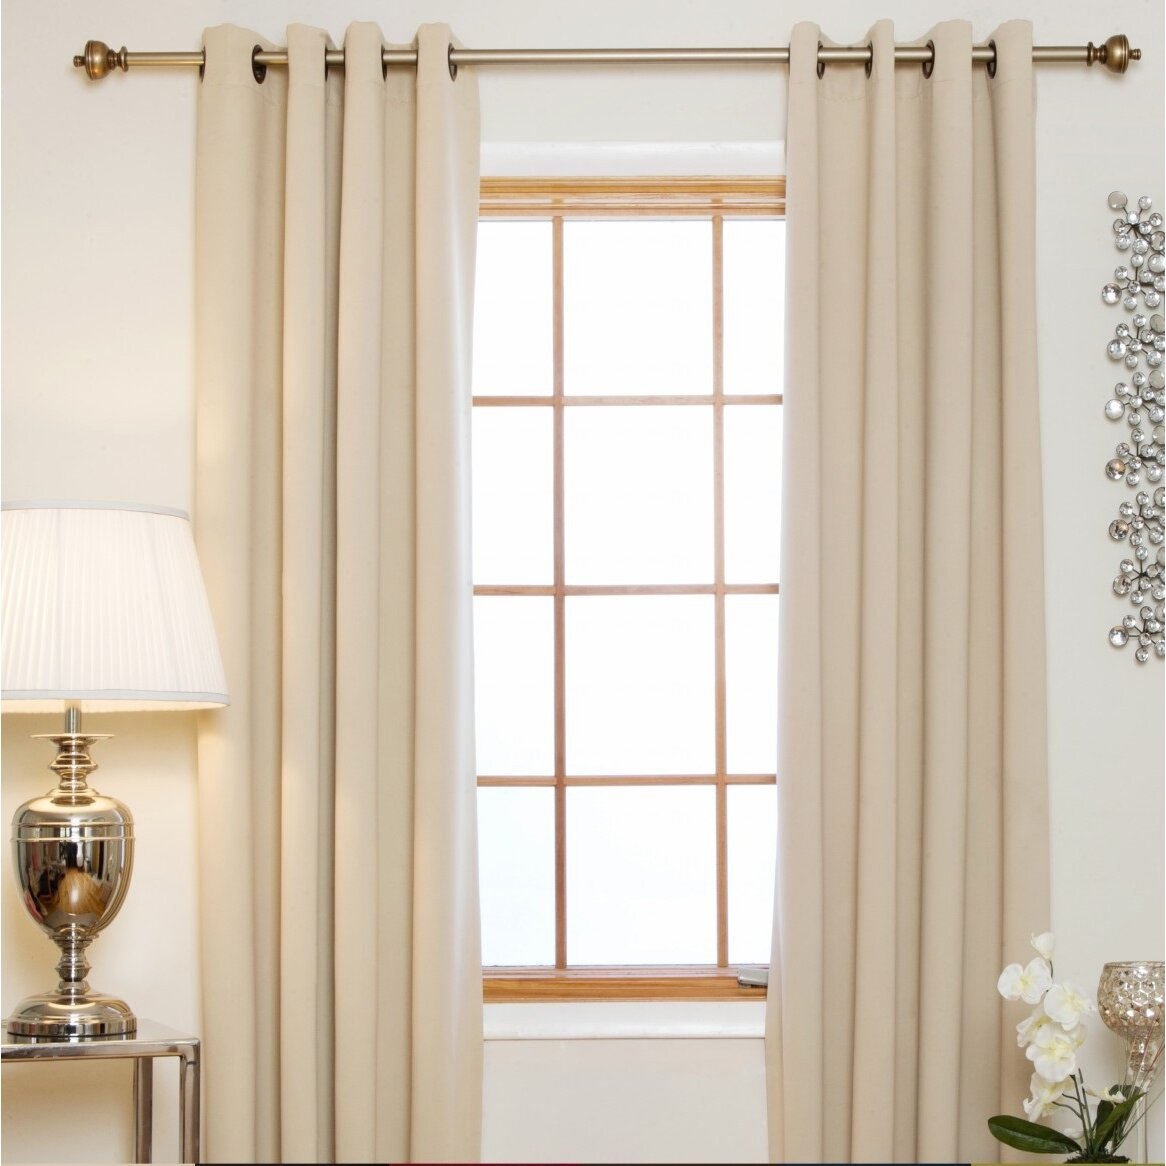 Mistakes You Are Doing Prominently While Curtain Hanging